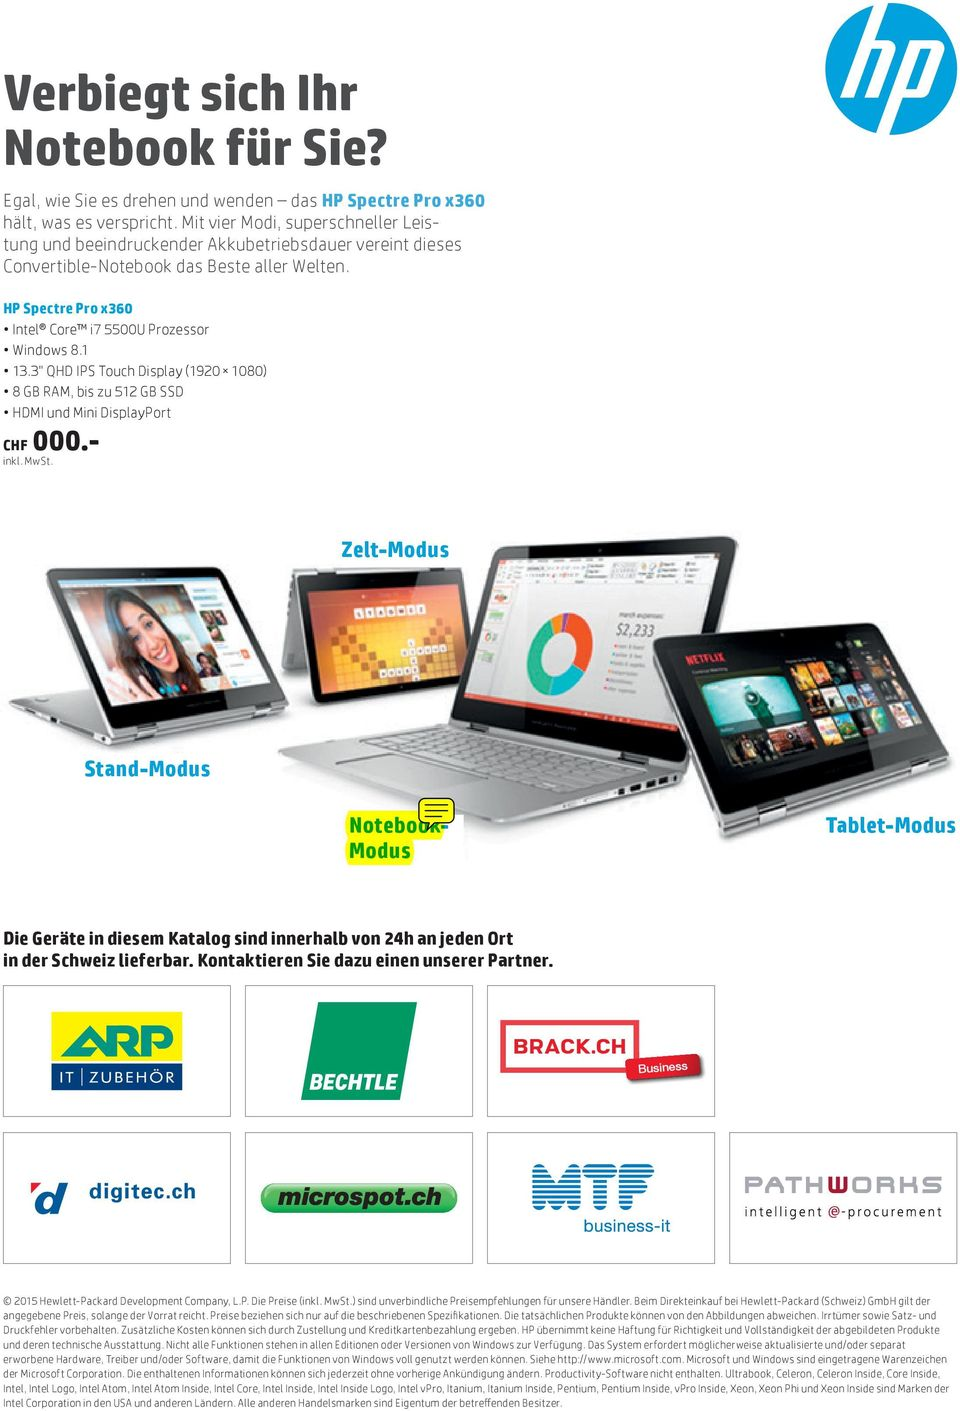 "1 13.3"" QHD IPS Touch Display (1920 1080) 8 GB RAM, bis zu 512 GB SSD HDMI und Mini DisplayPort CHF 000."